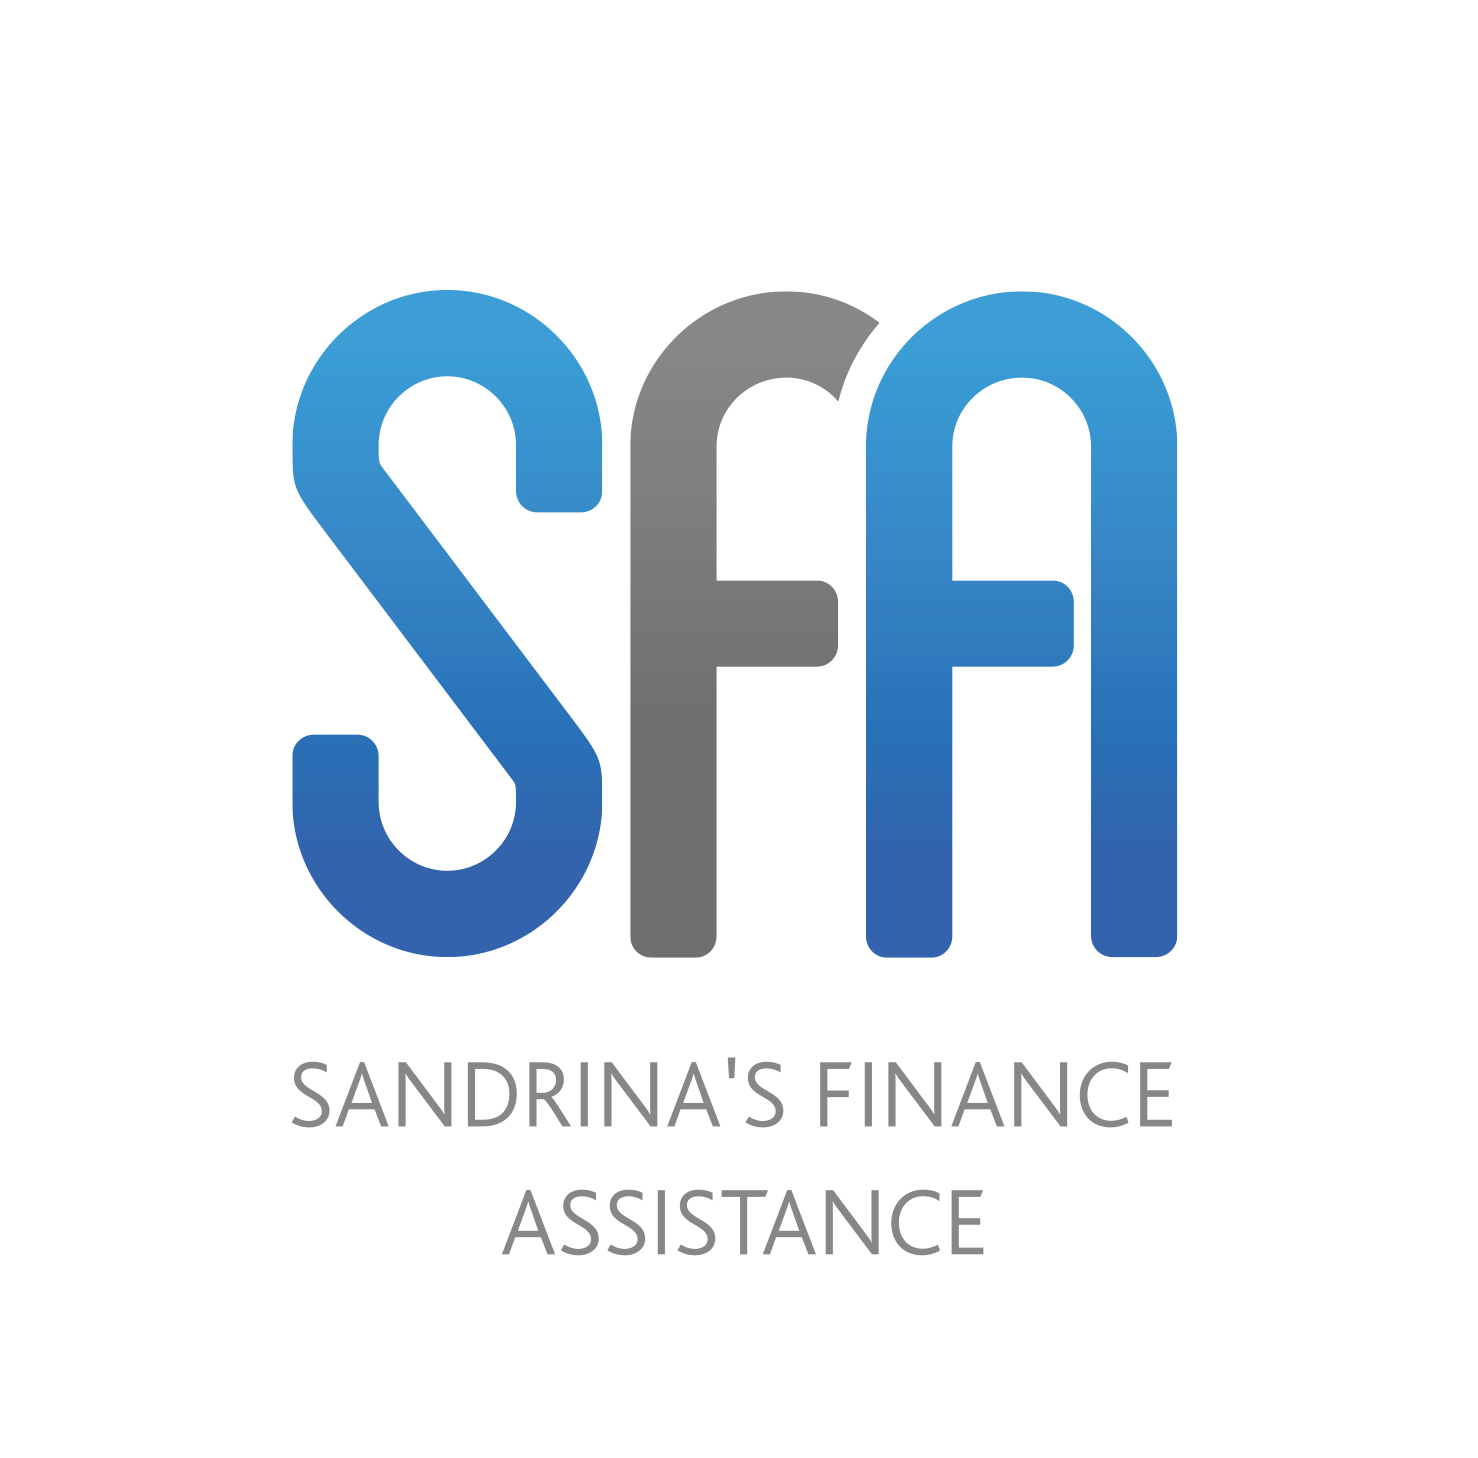 Sandrina's Finance Assistance